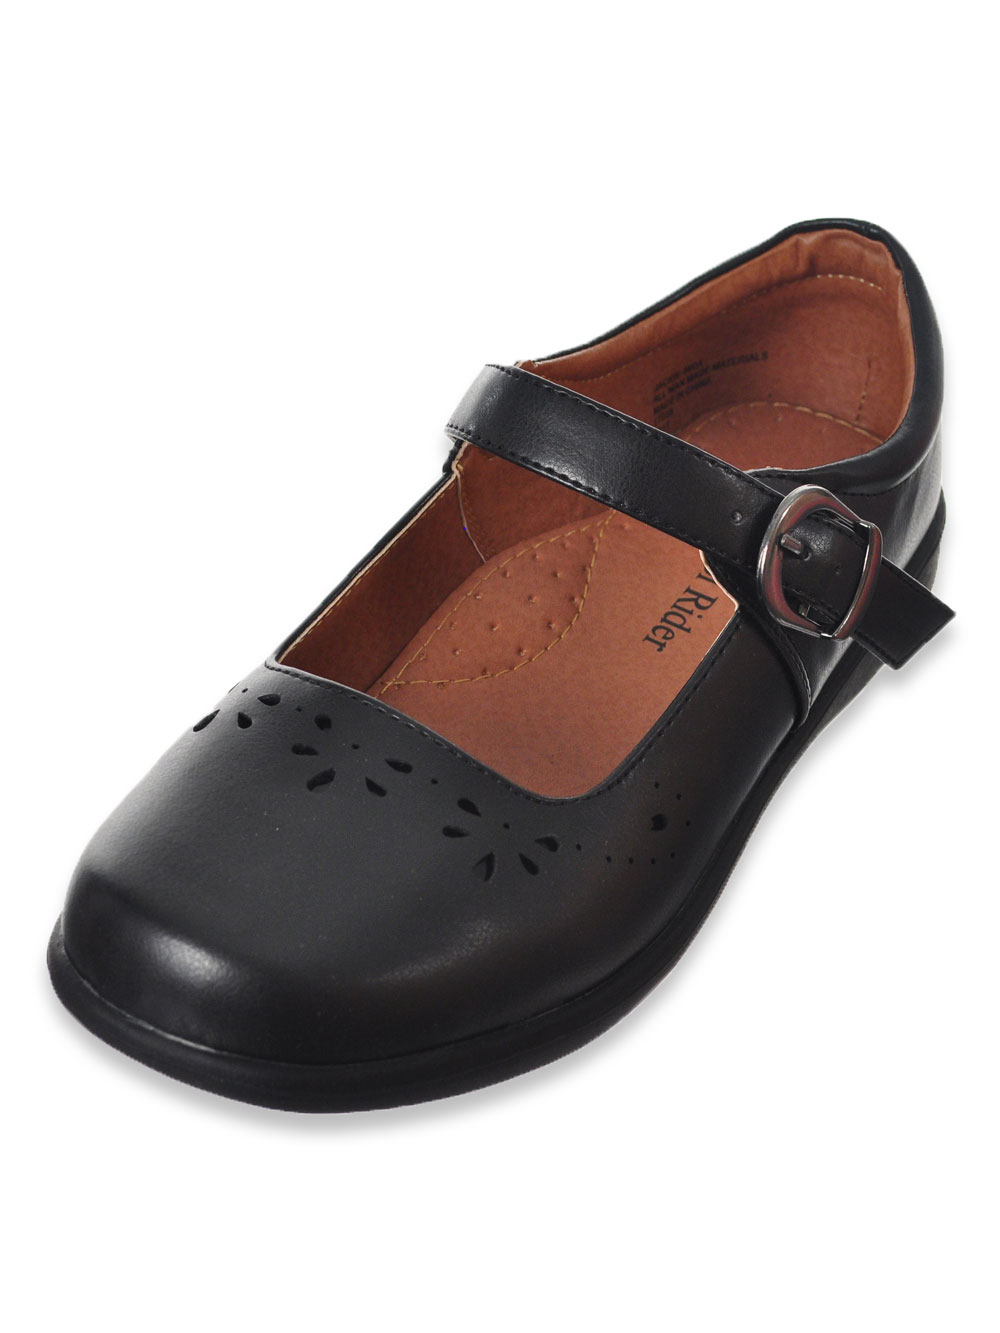 Girls' Teardrop Mary Janes